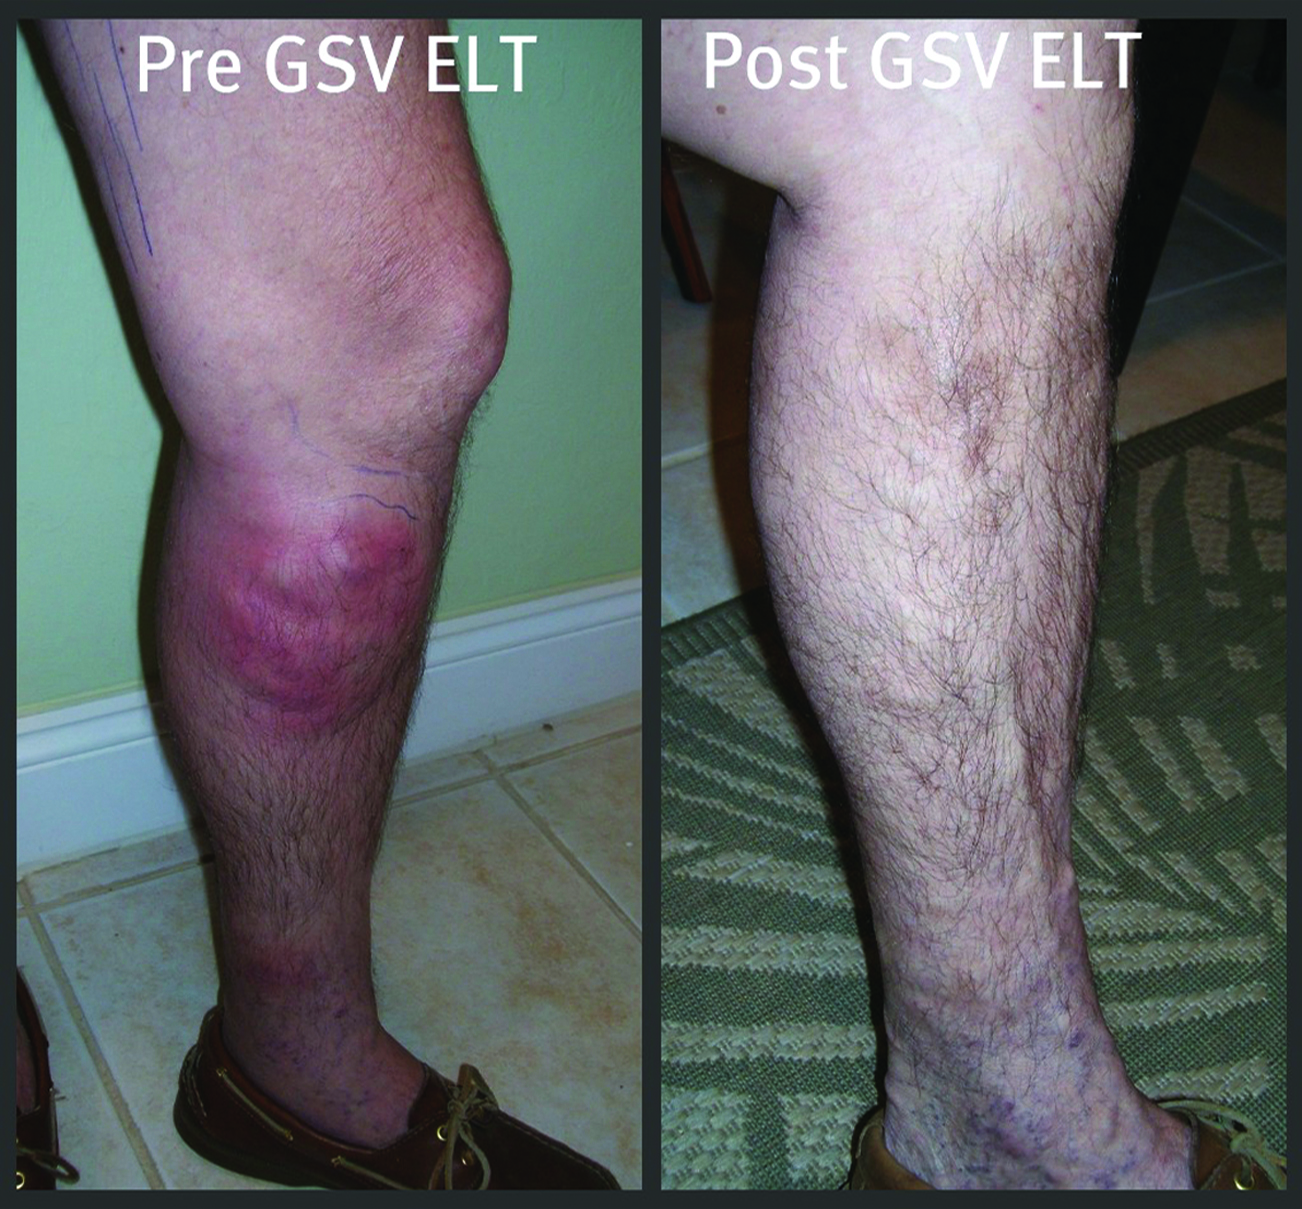 MORE THAN JUST VARICOSE VEINS